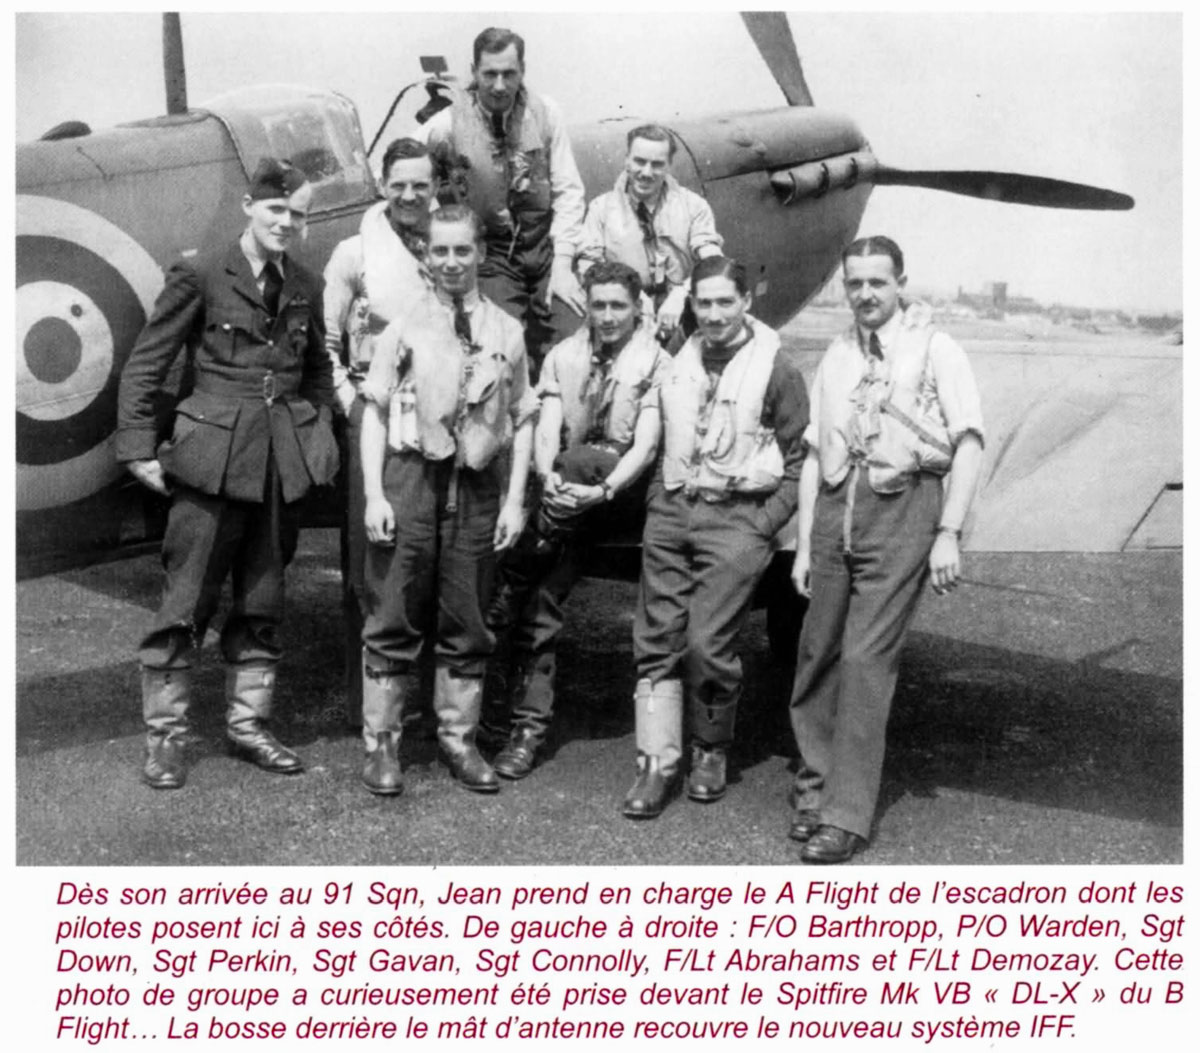 Aircrew RAF 91Sqn Jean Demozay and pilots next to Spitfire Vb DL X 01